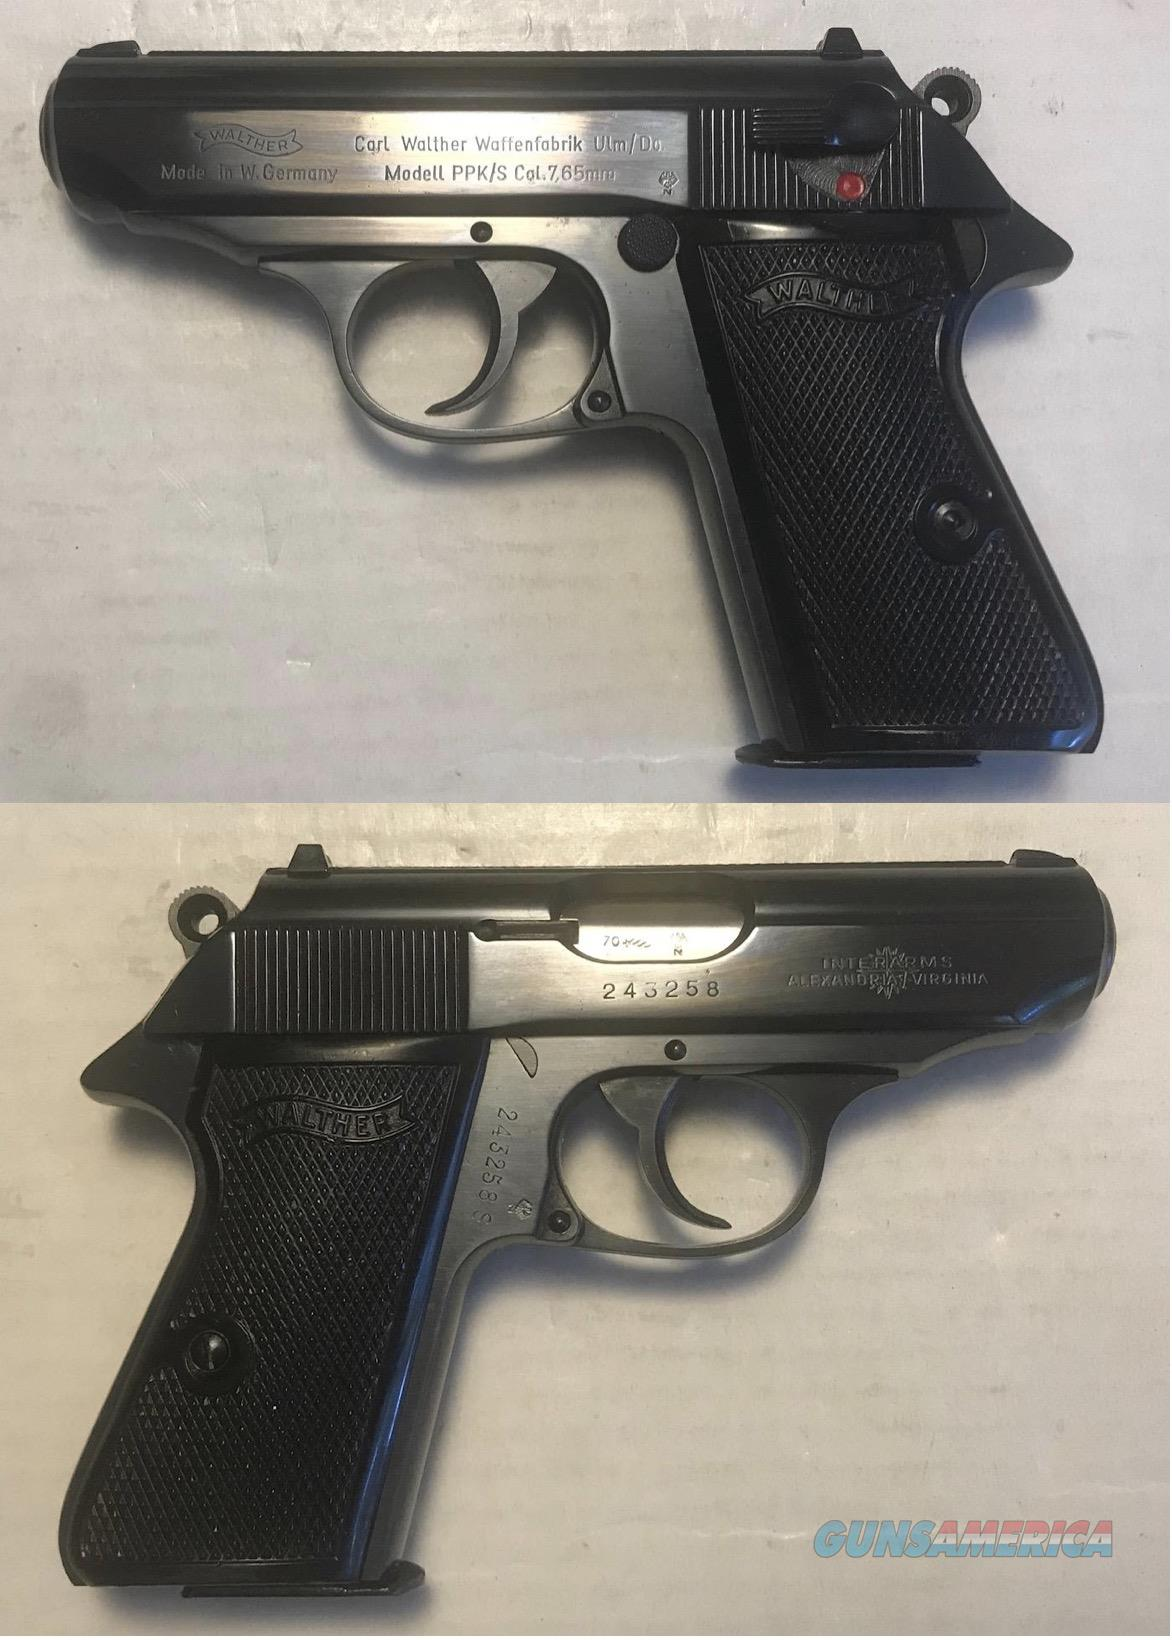 German Walther PPK/S 7.65mm (.32acp) Mfg. 1970  Guns > Pistols > Walther Pistols > Post WWII > PPK Series